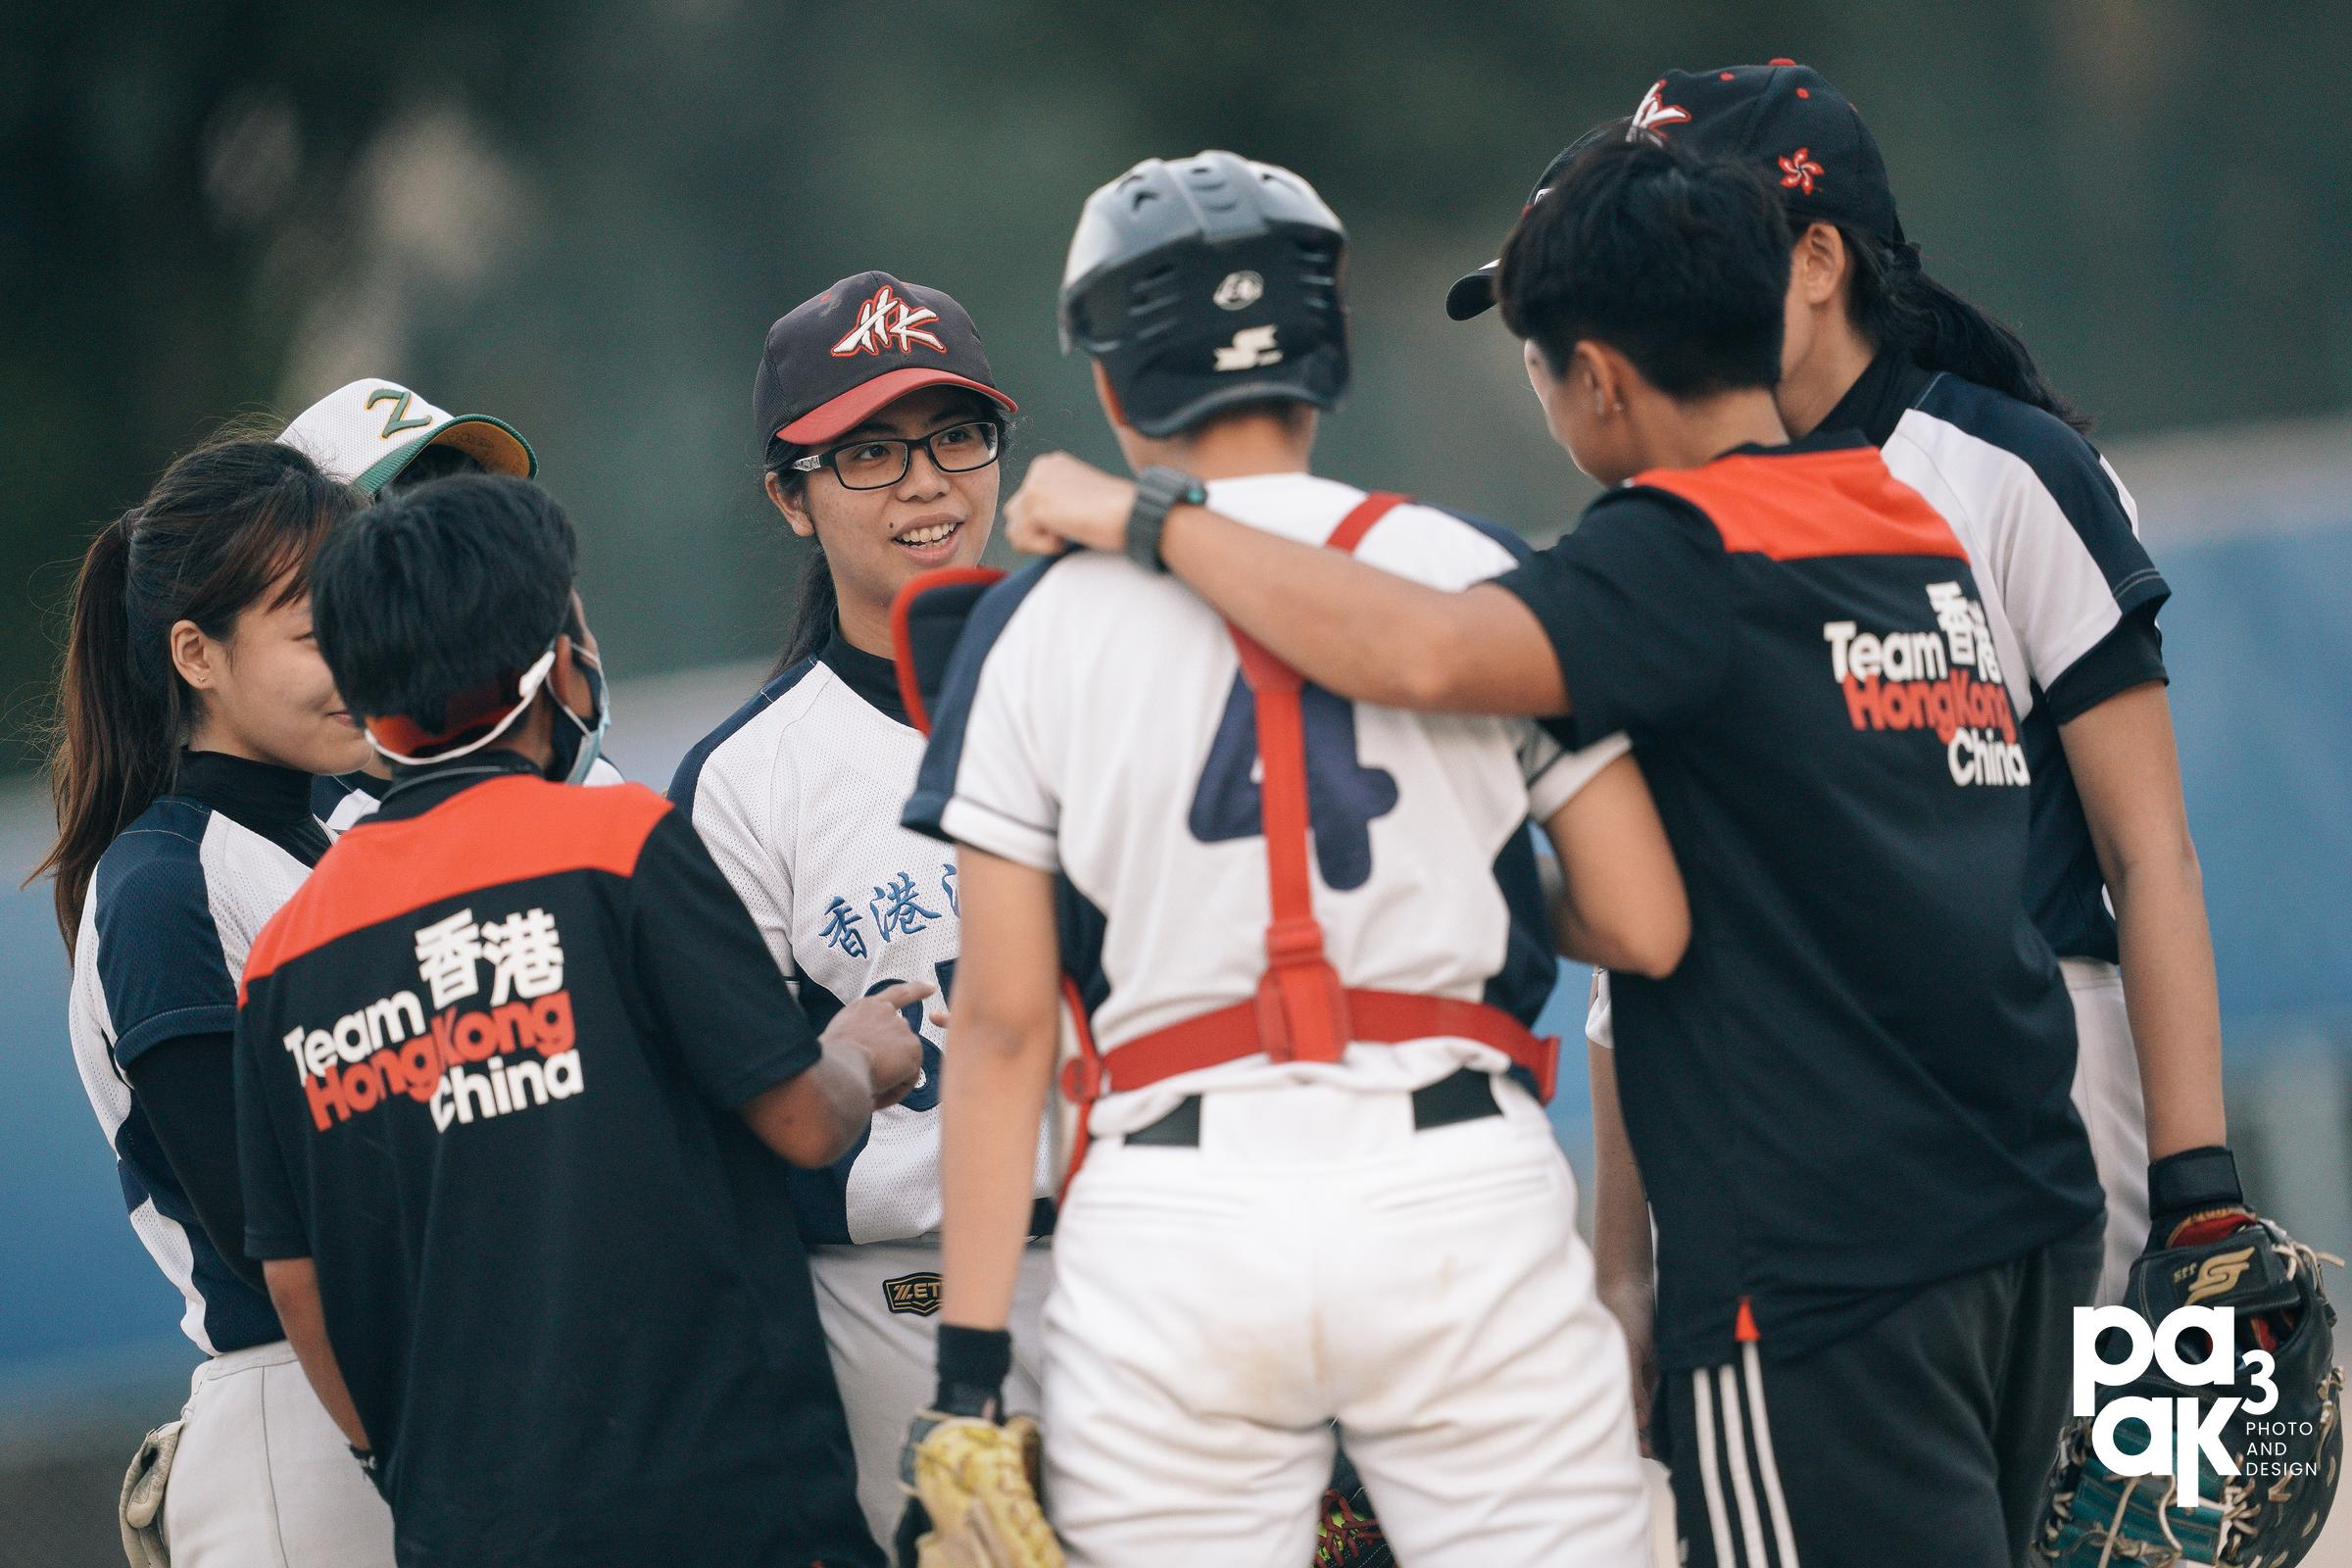 The 21st Inter-U Softball Tournament